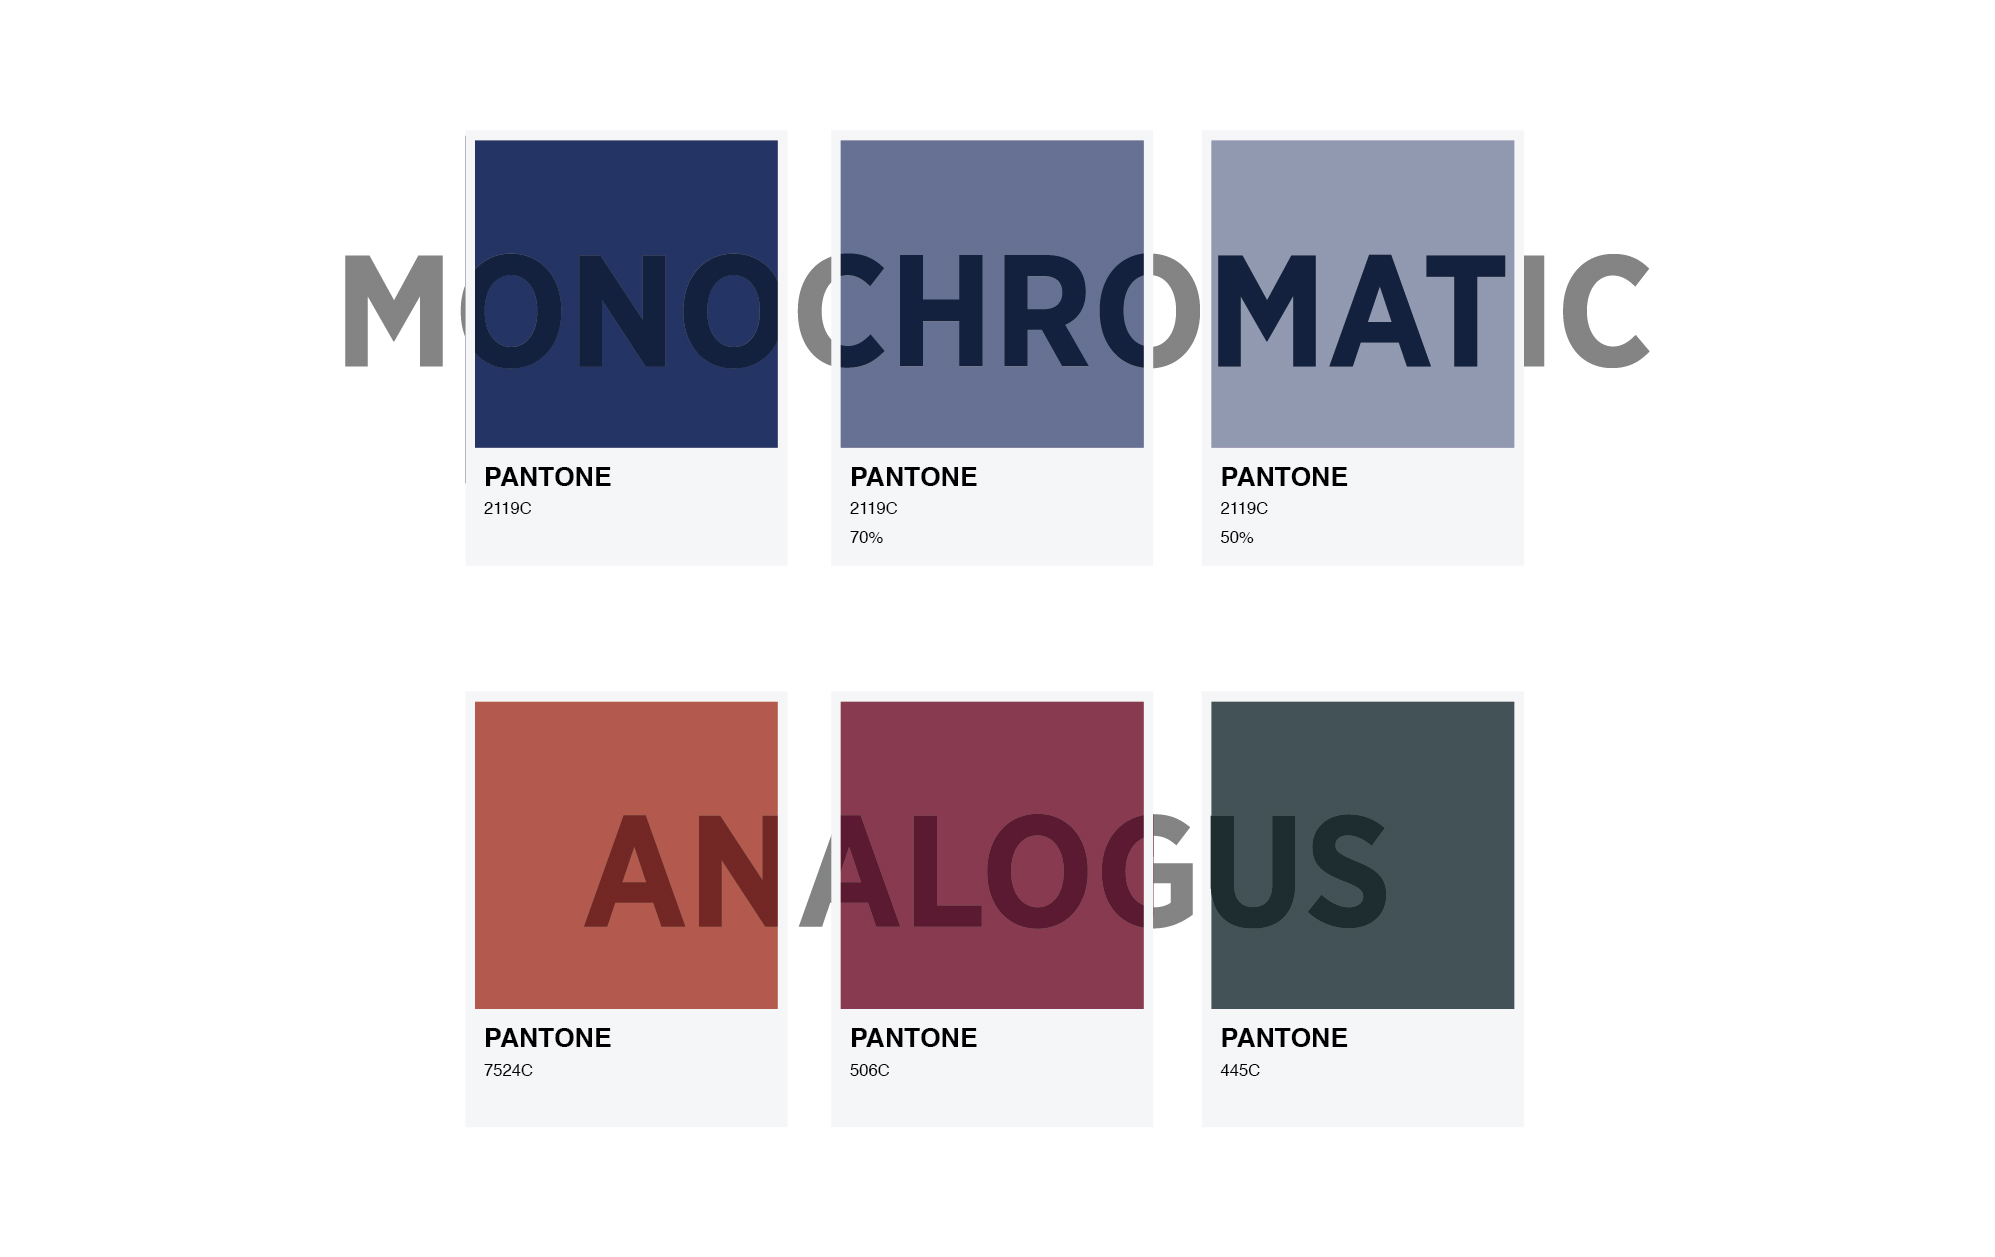 pantone colour squares indicating monochromatic and analogus colour